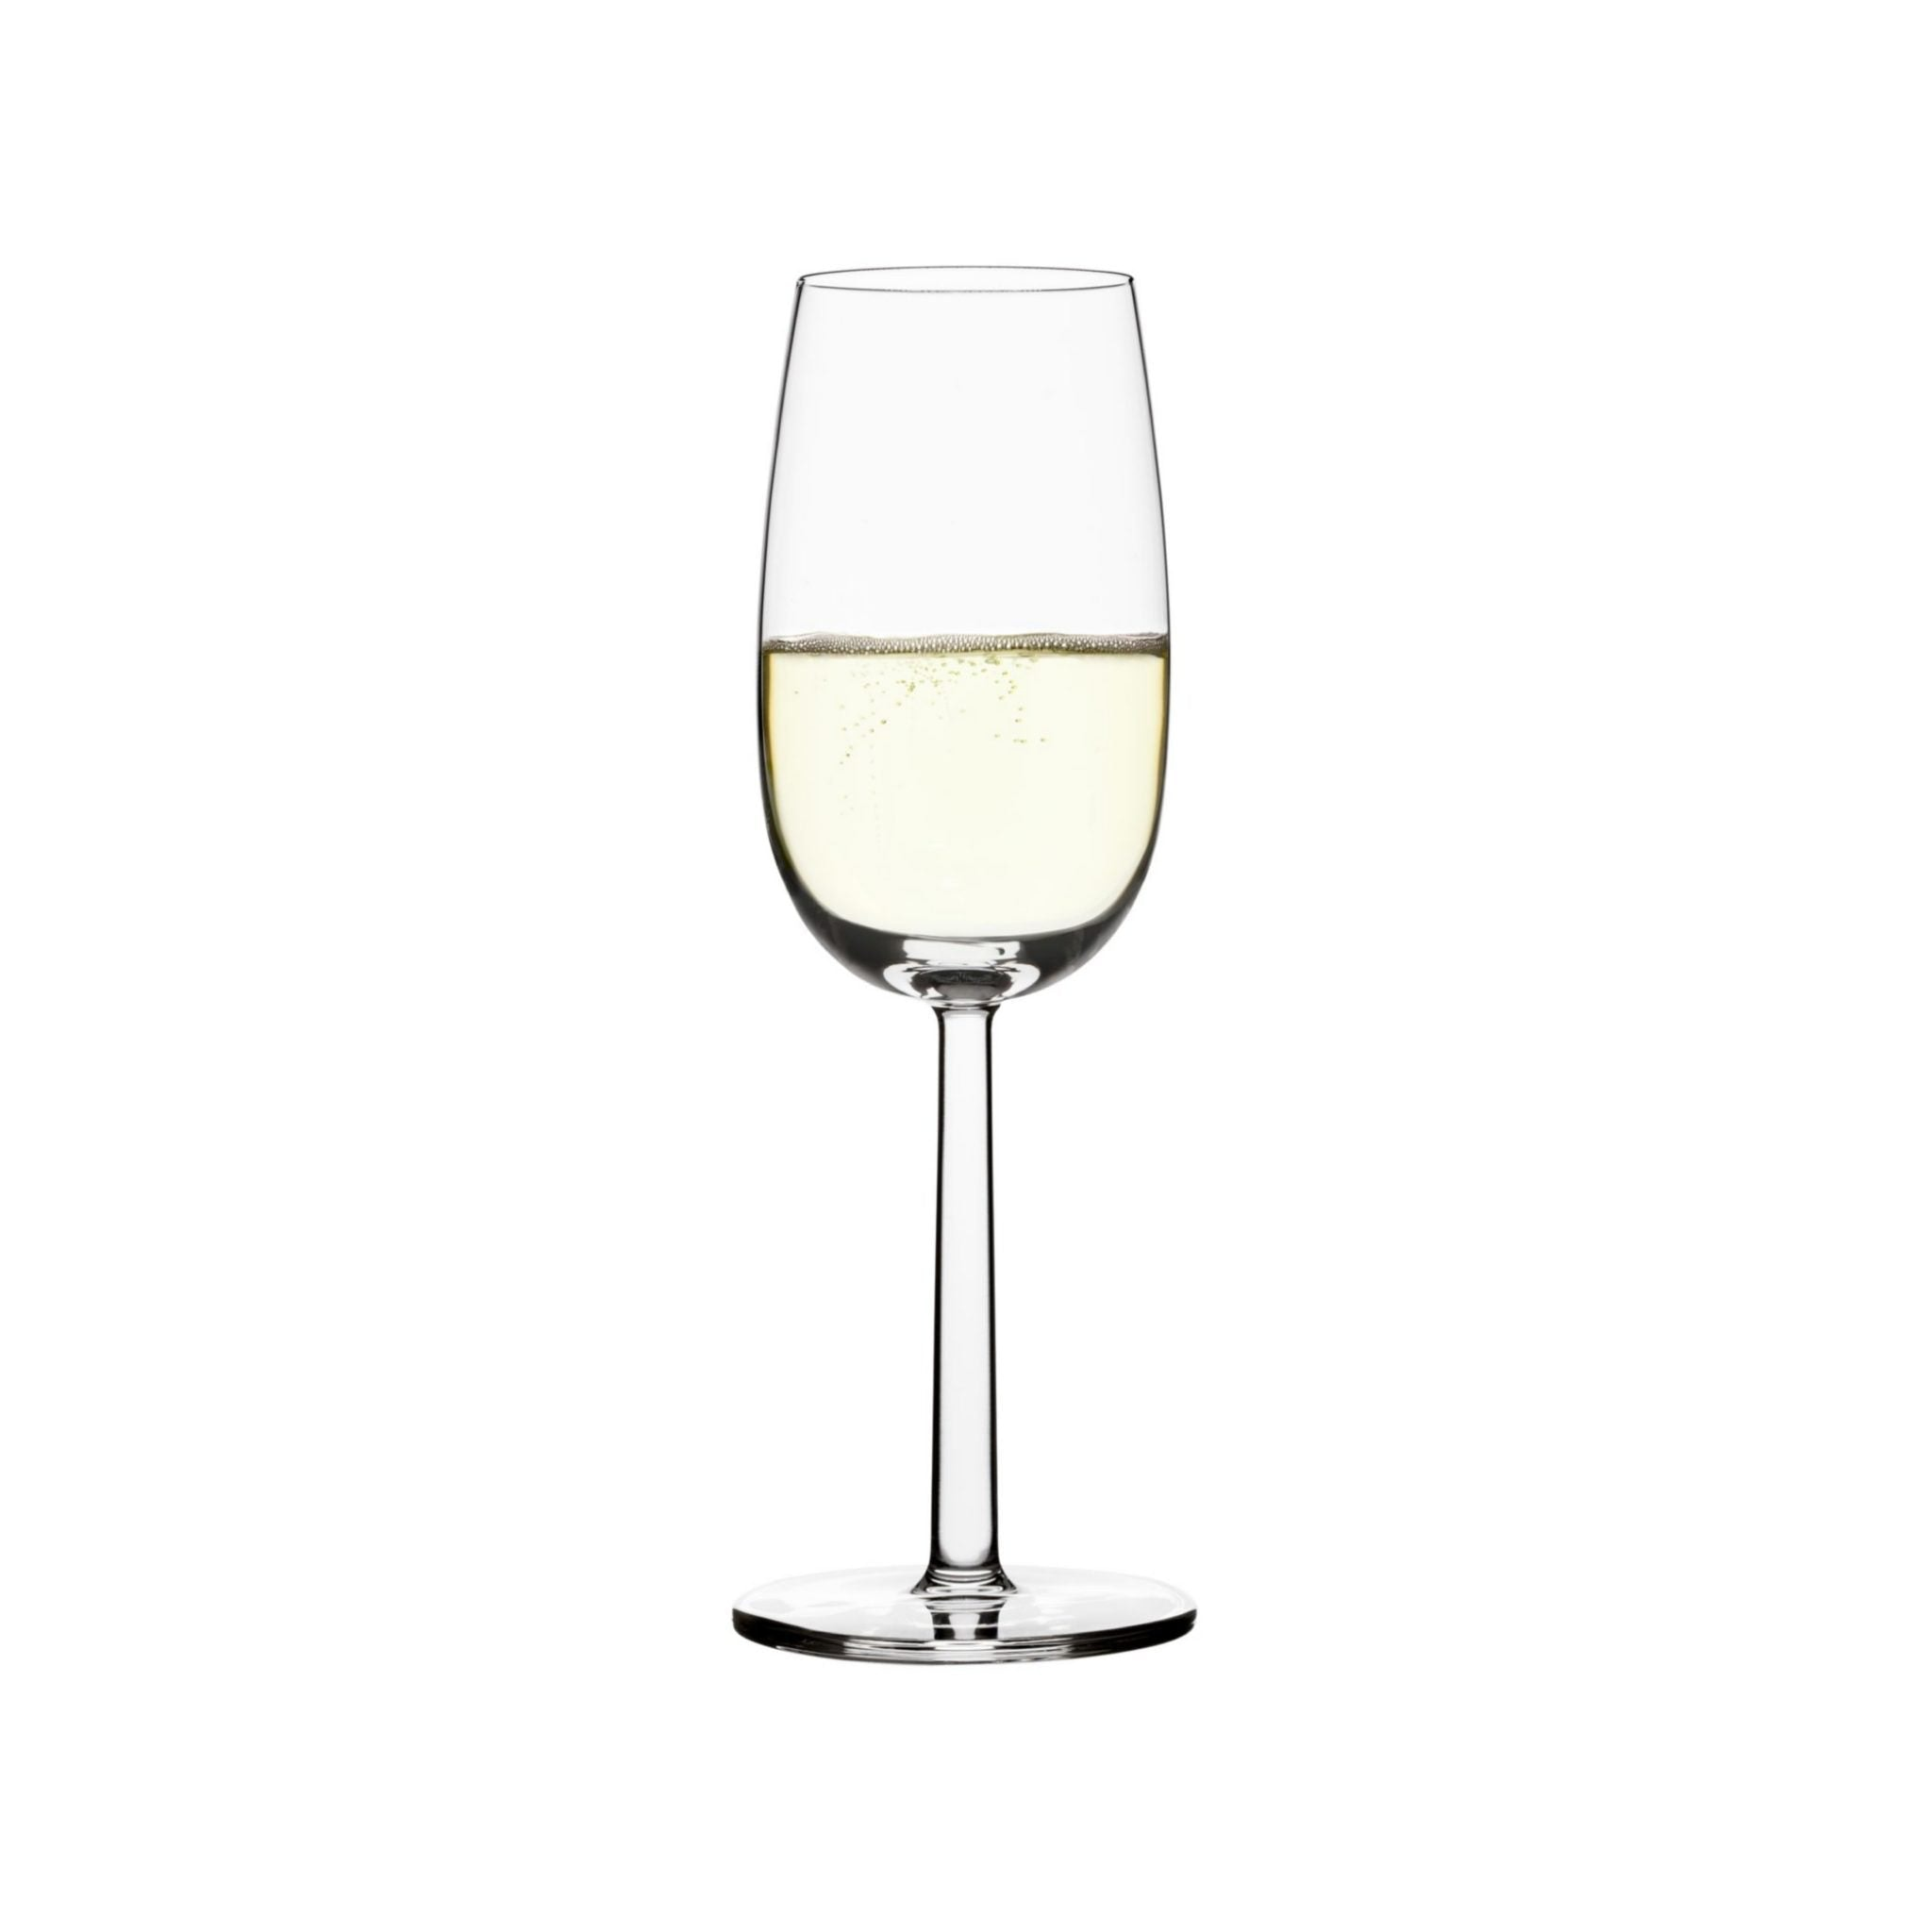 Raami Sparkling Wine Glass by Iitala